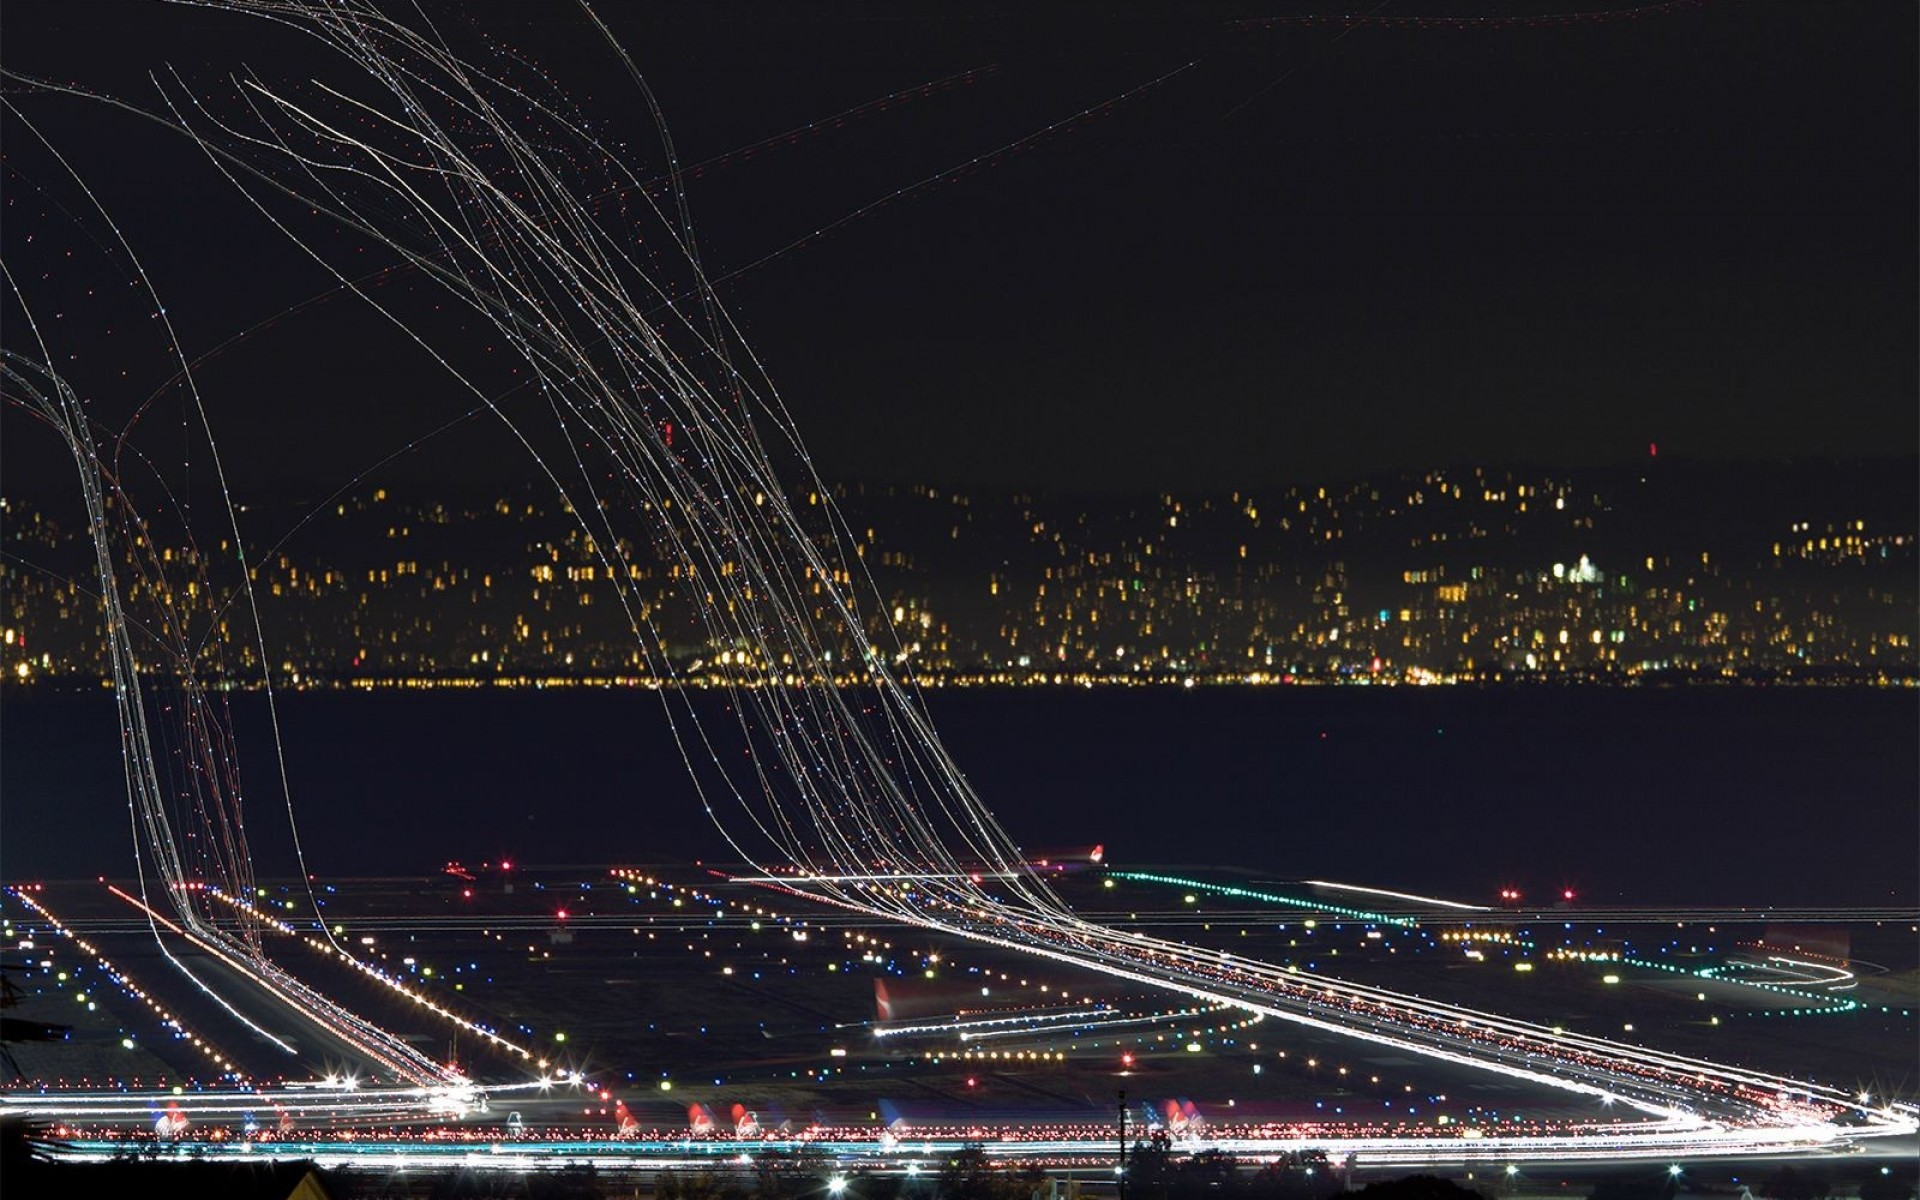 since you liked the long exposure airport shot, here's another one!